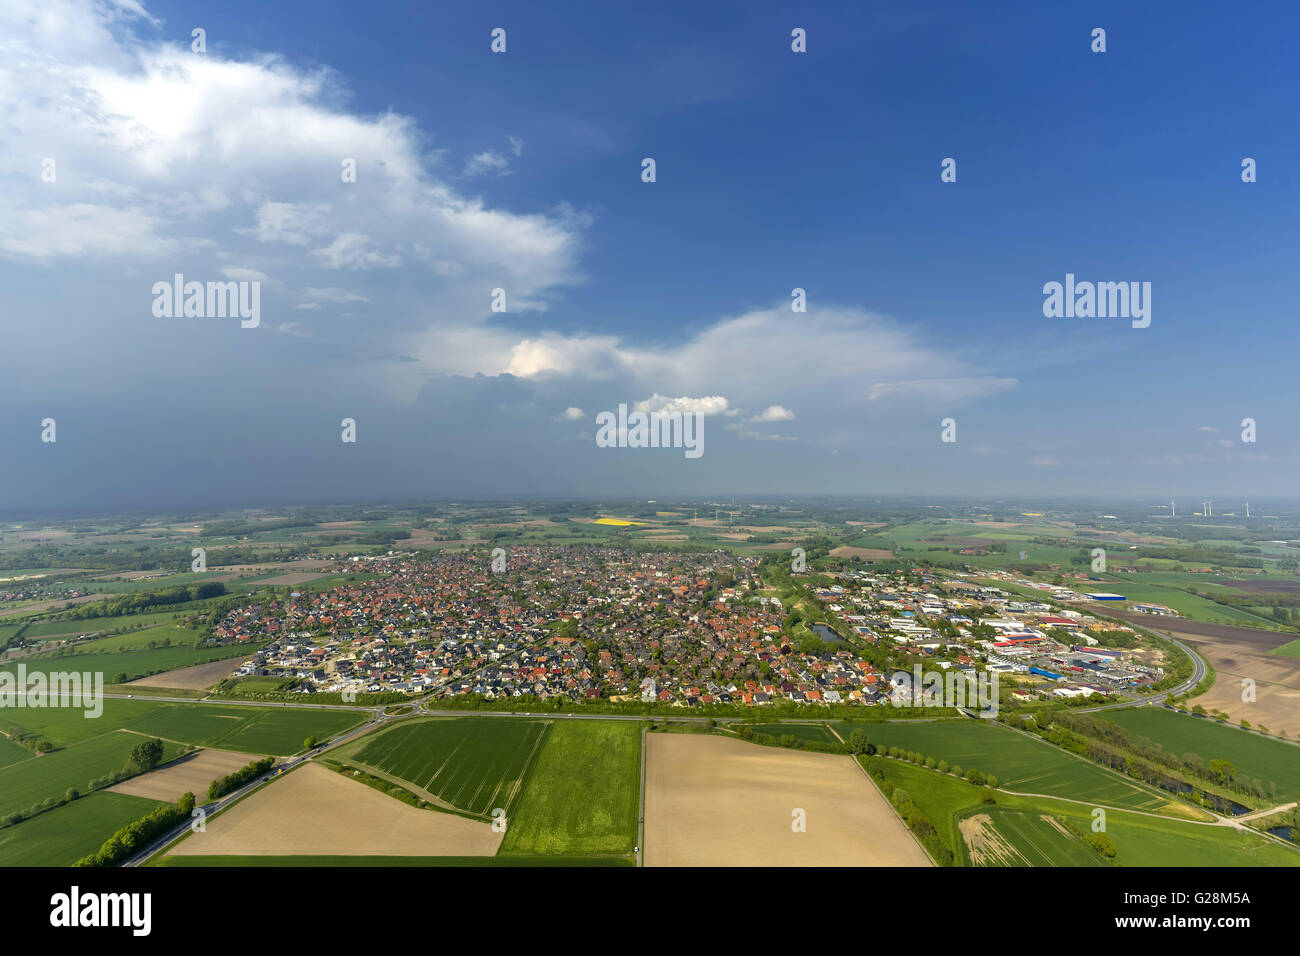 Aerial view, Olfen, green city, cloudy sky over Olfen, Münsterland countryside, Germany, Europe, Aerial view, - Stock Image